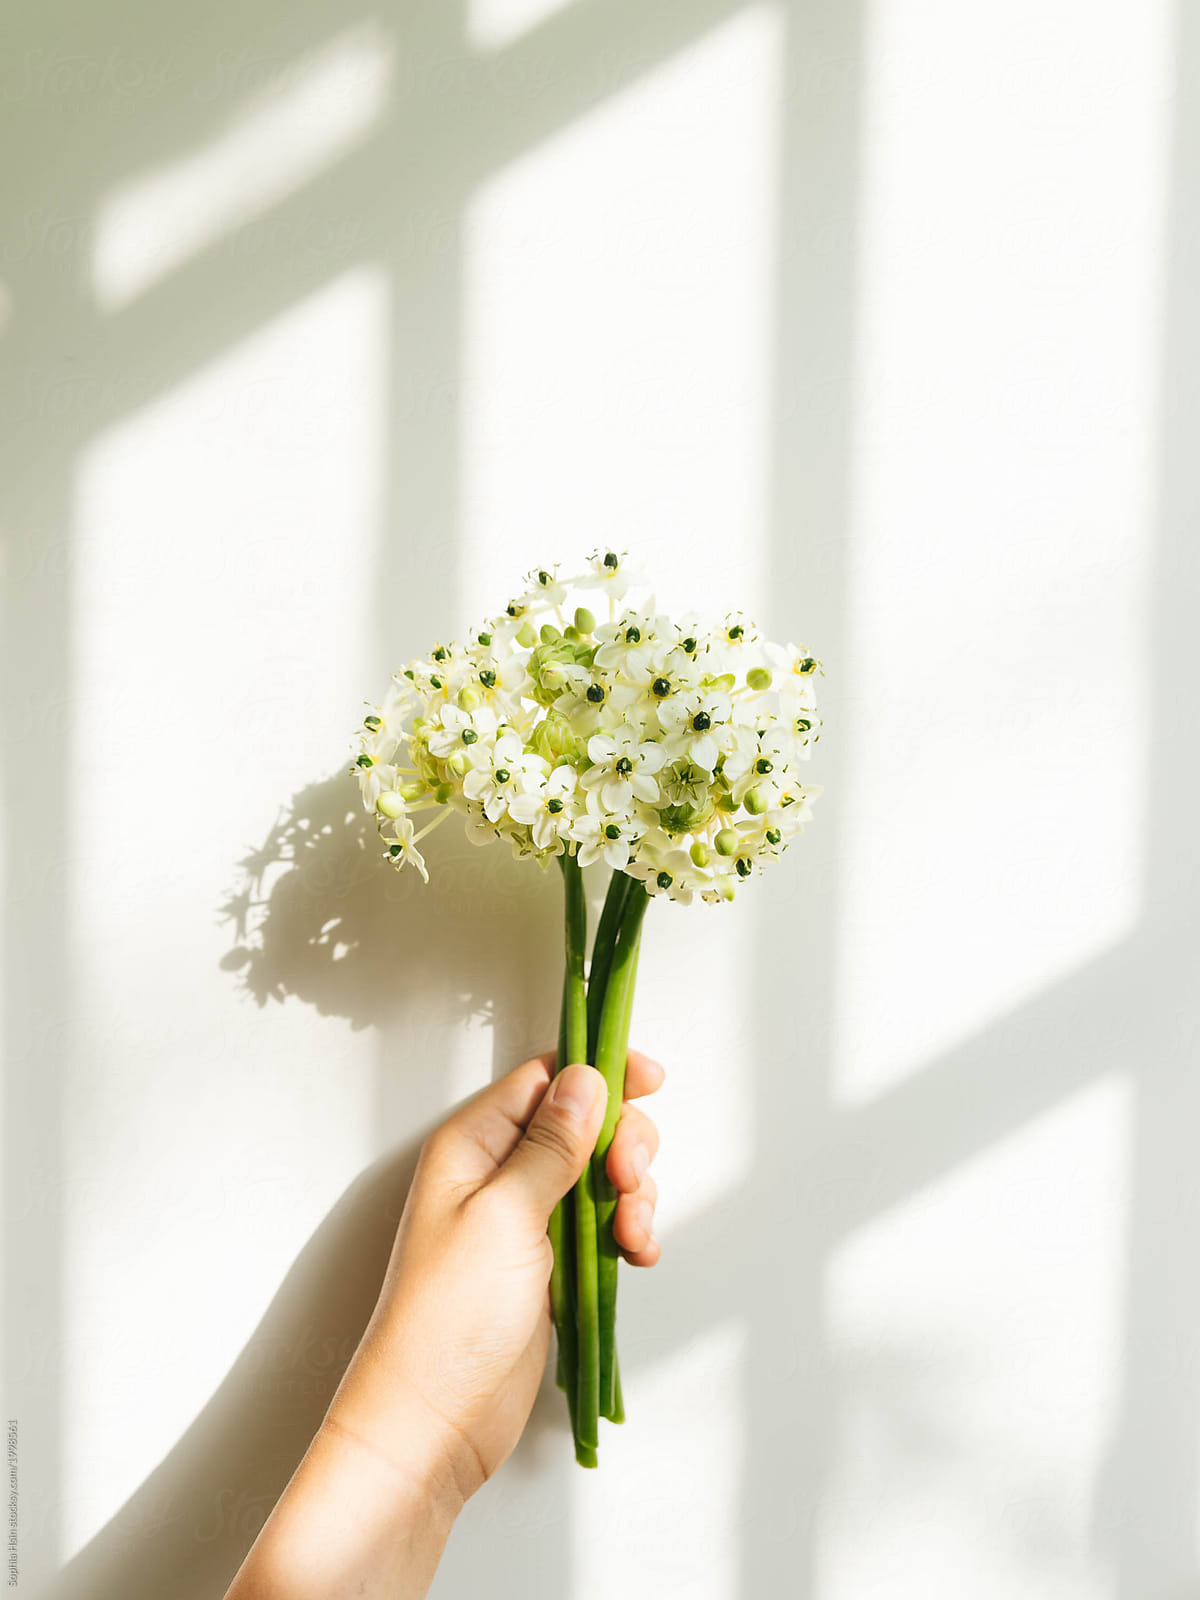 Hand Holding White Flowers With Green Stem In Natural Light